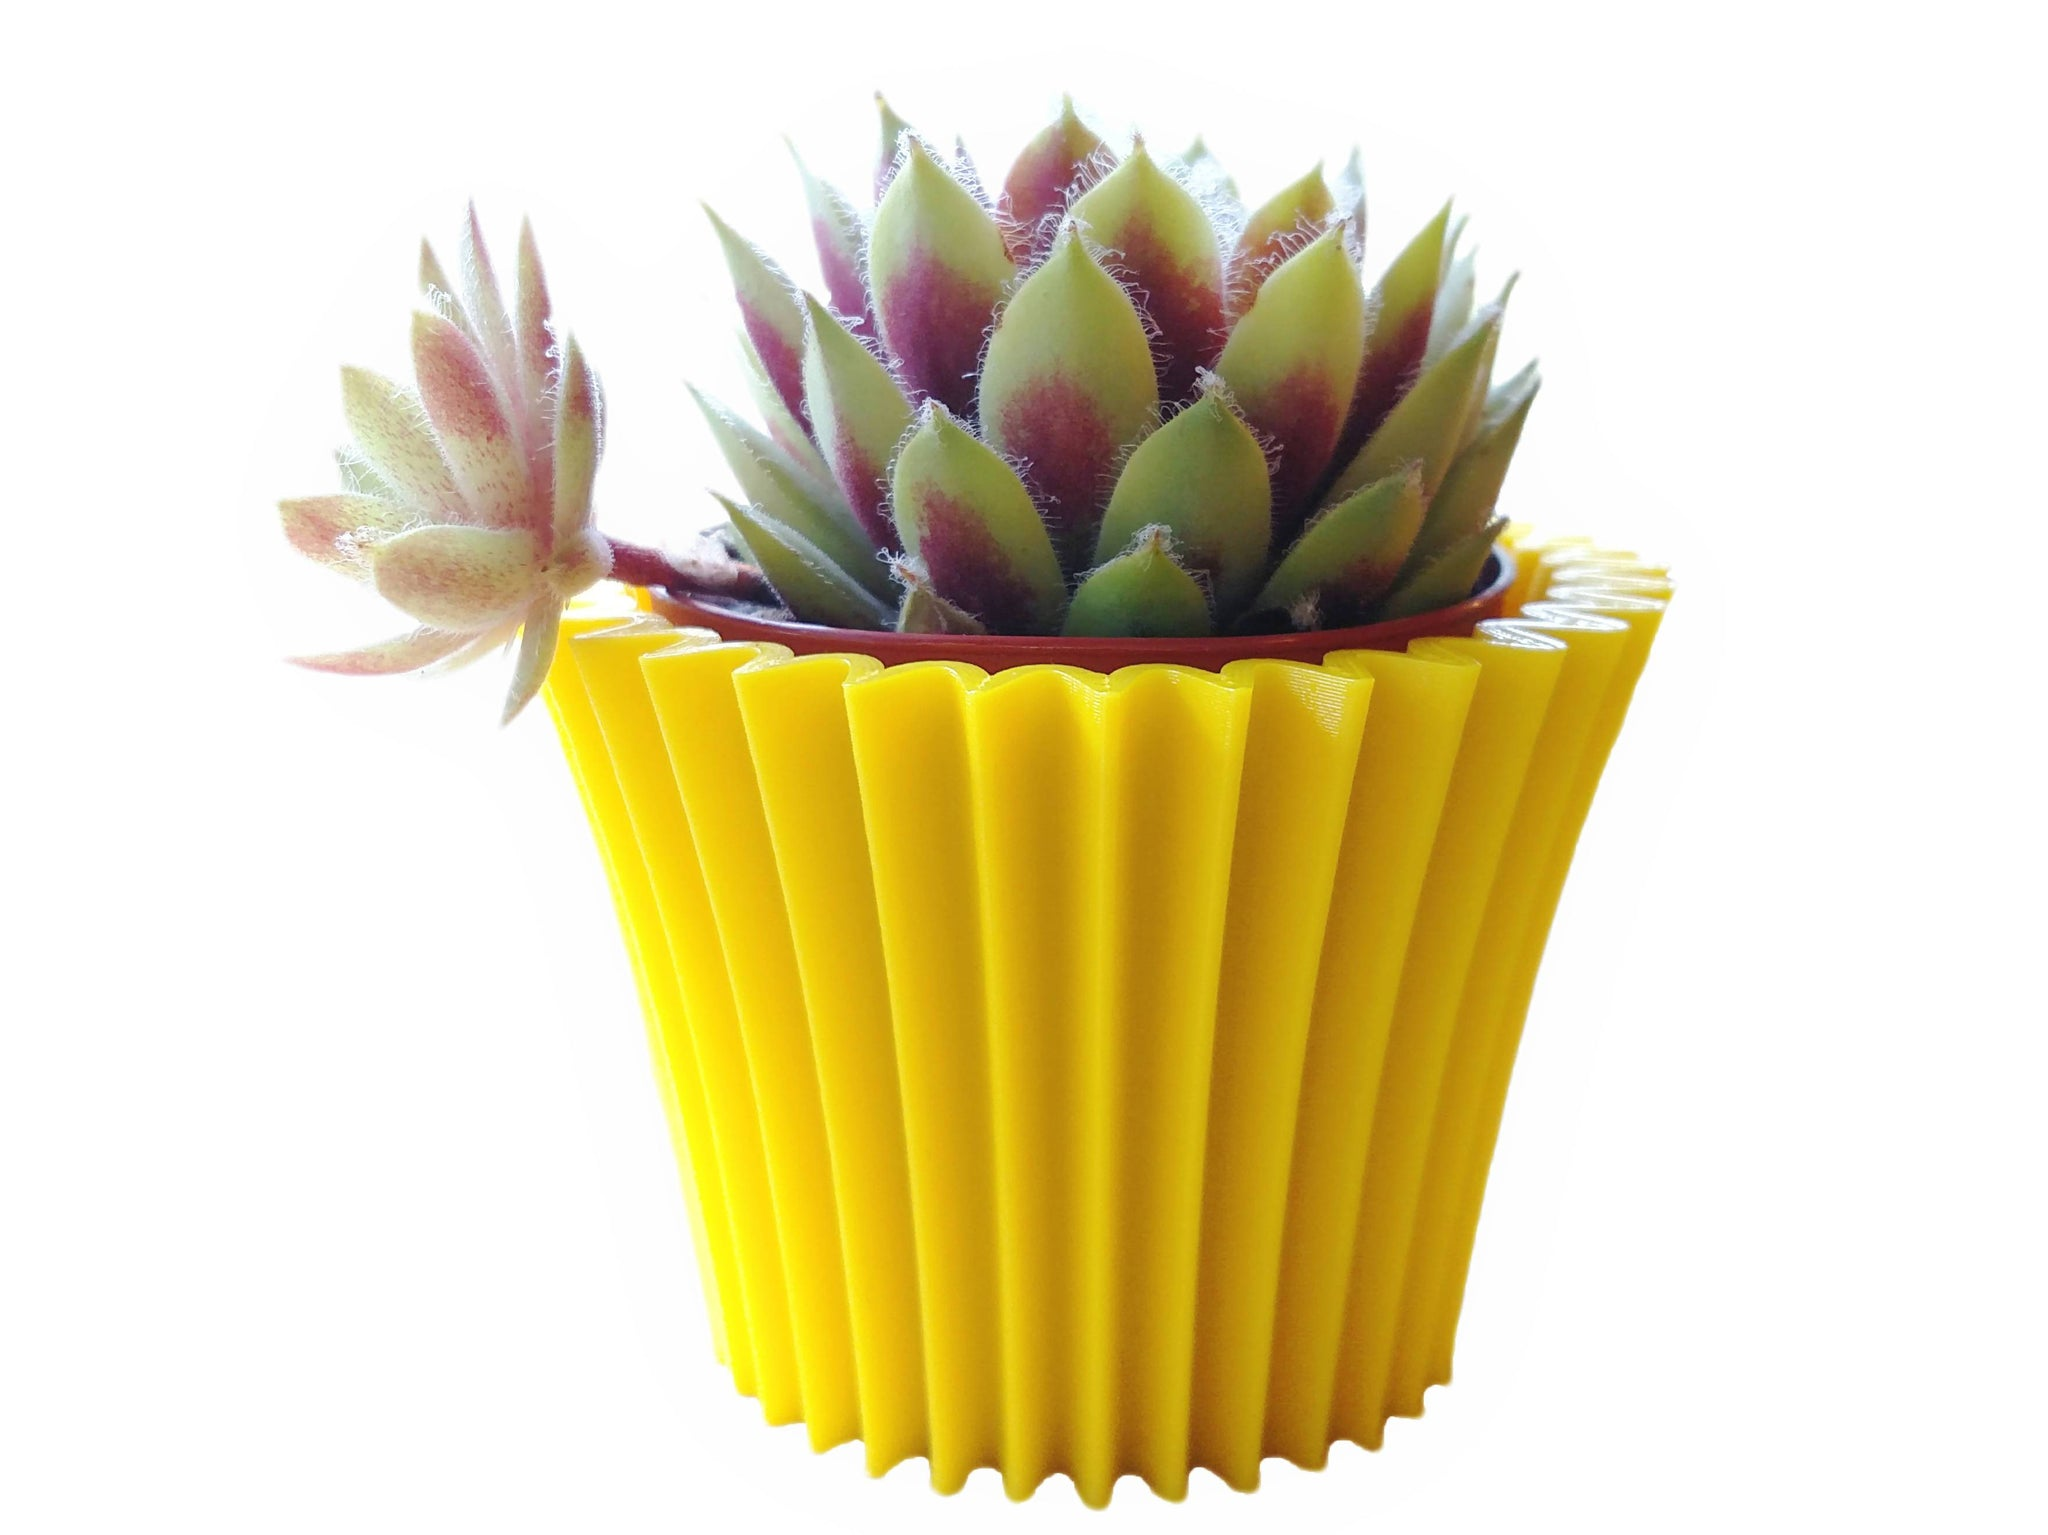 Cupcake 3d Printed Planter - Succulent Mini Planter - Modern Home Decor - Multiple Sizes & Colors Available - Geometric Design